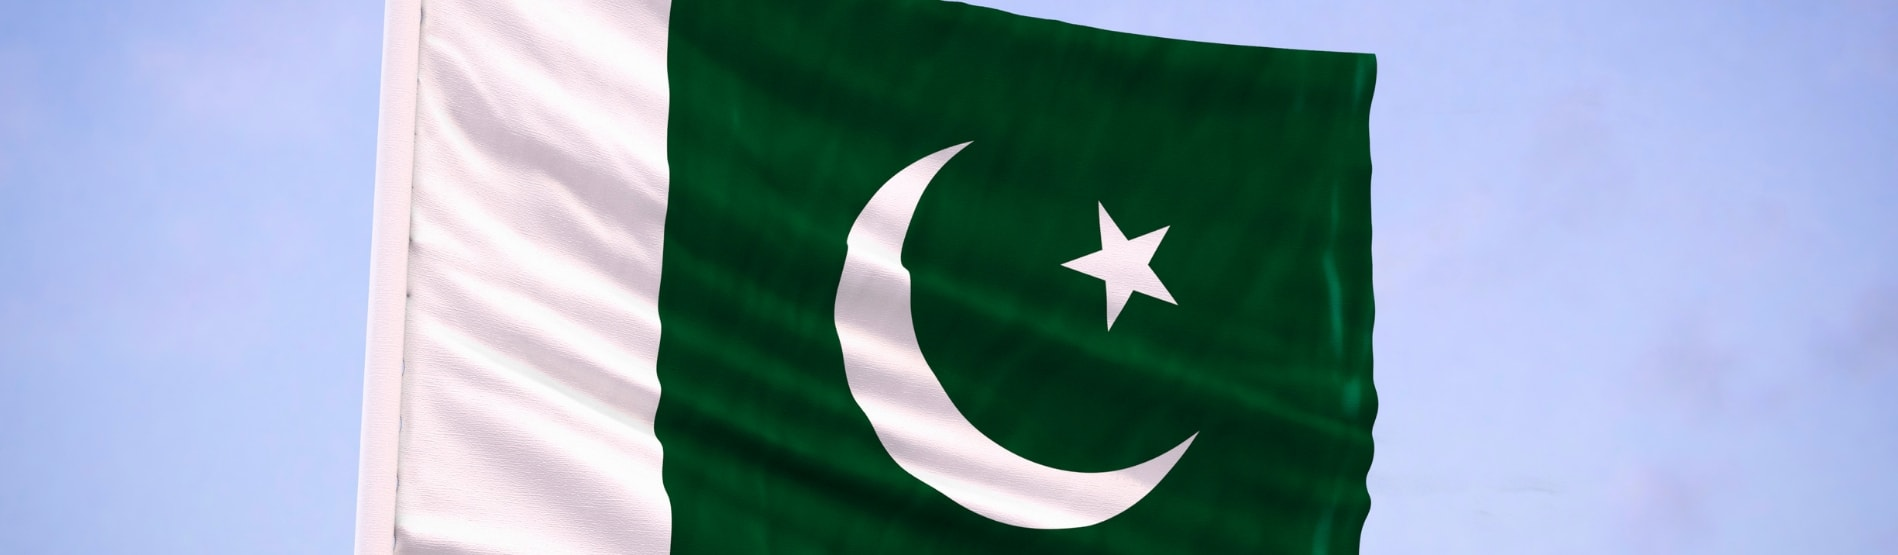 Flag of Pakistan waving in the breeze